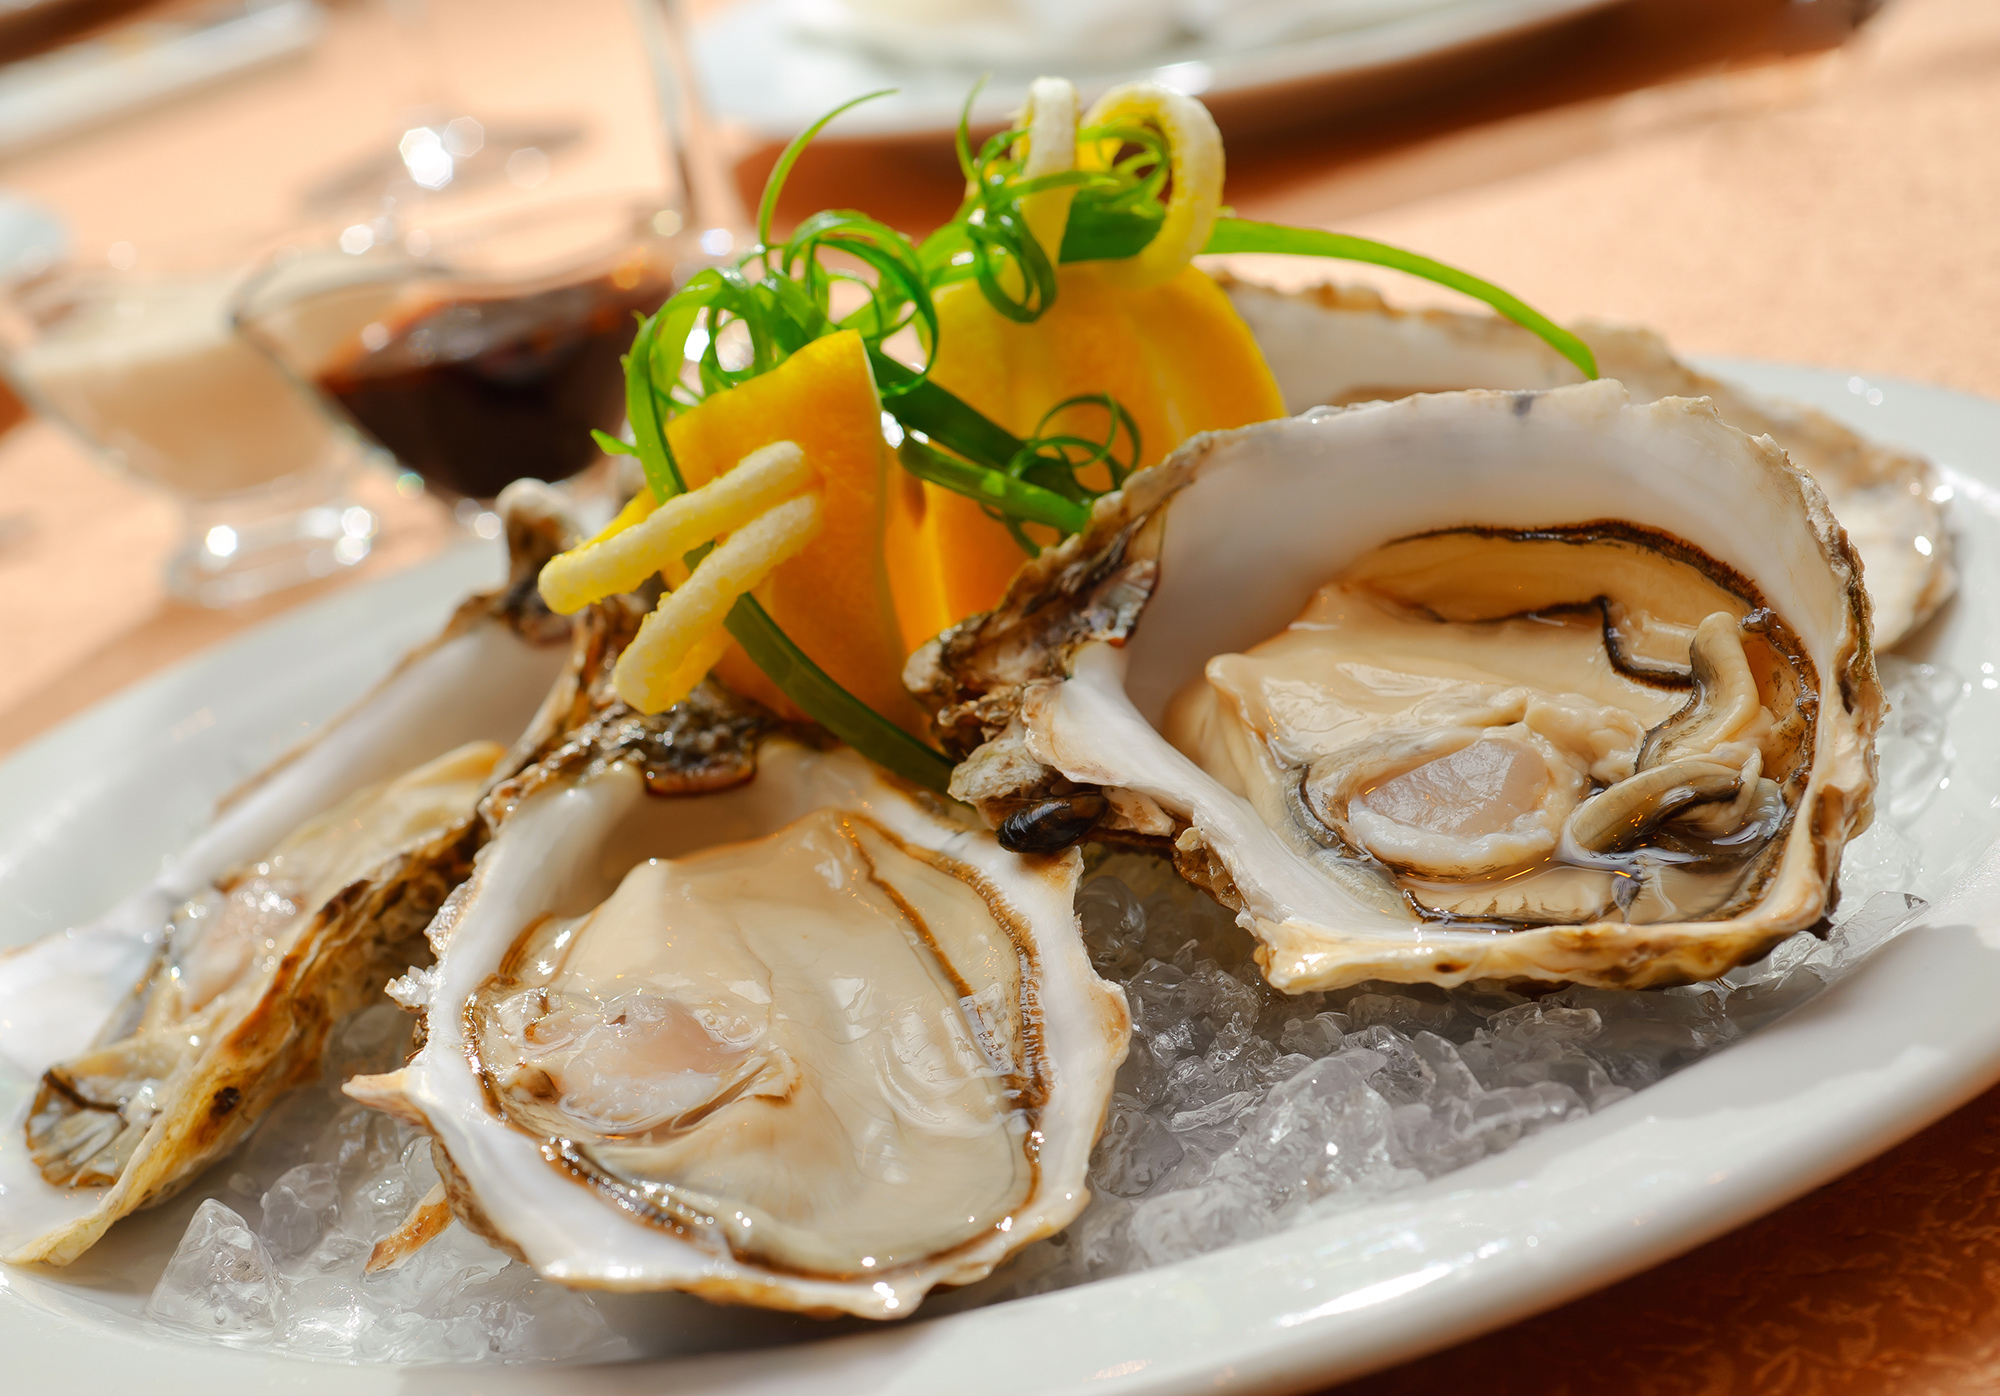 Plate of delicious premium oysters